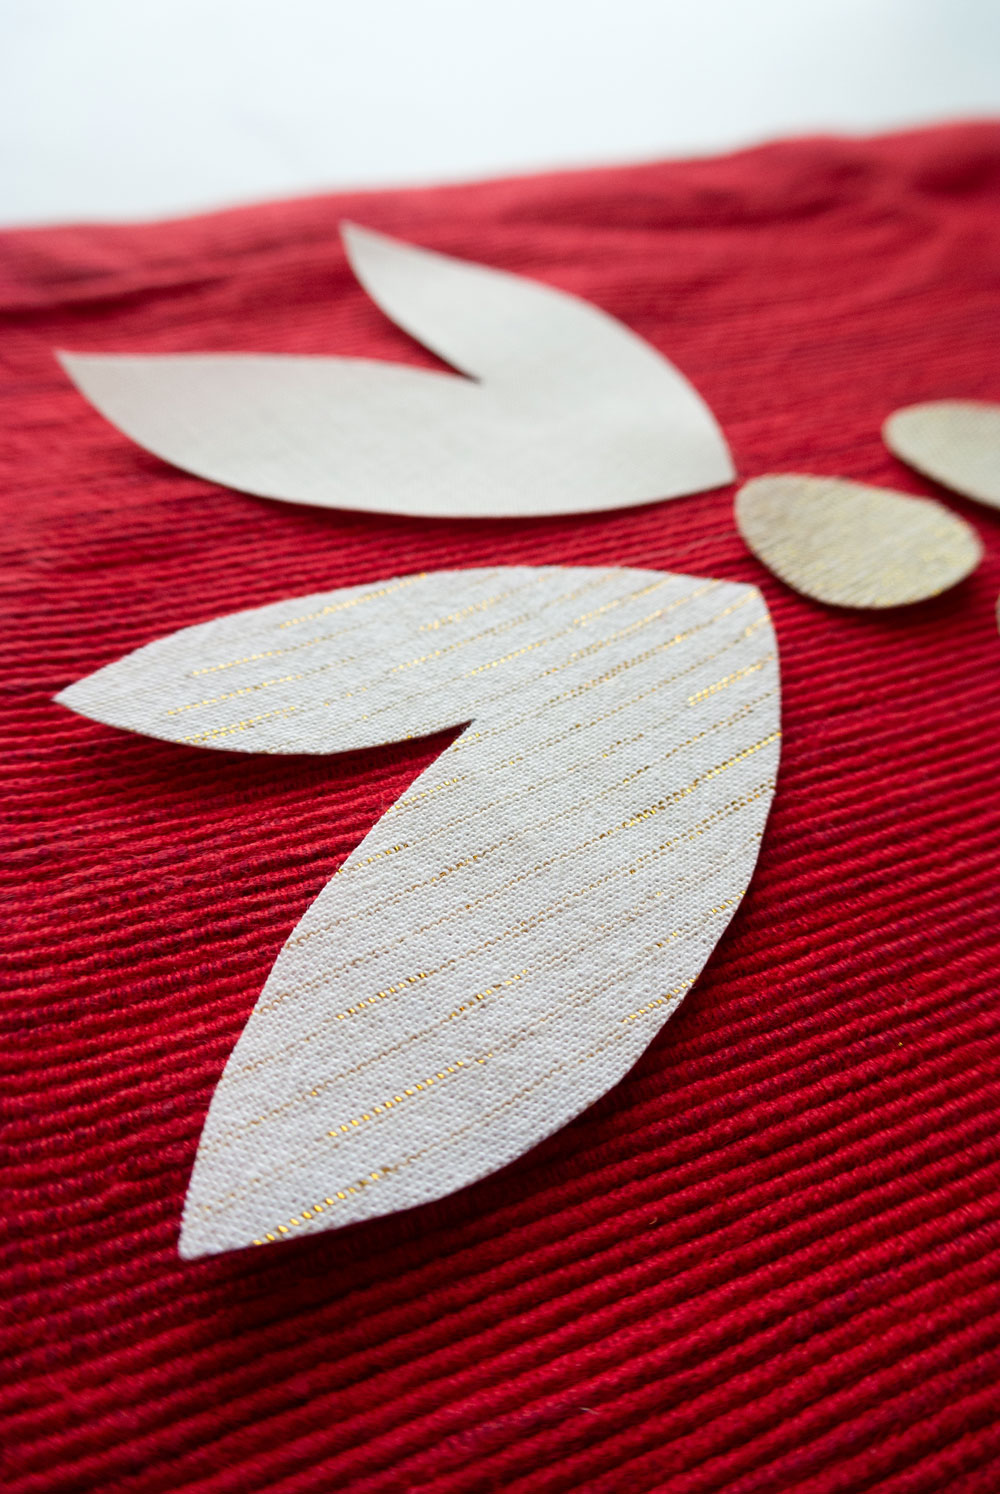 A FREE DIY Christmas placemats tutorial! This raw-edge applique sewing tutorial includes supplies, steps and a video tutorial PLUS free modern holiday applique templates! suzyquilts.com #ChristmasDIY #appliquetutorial